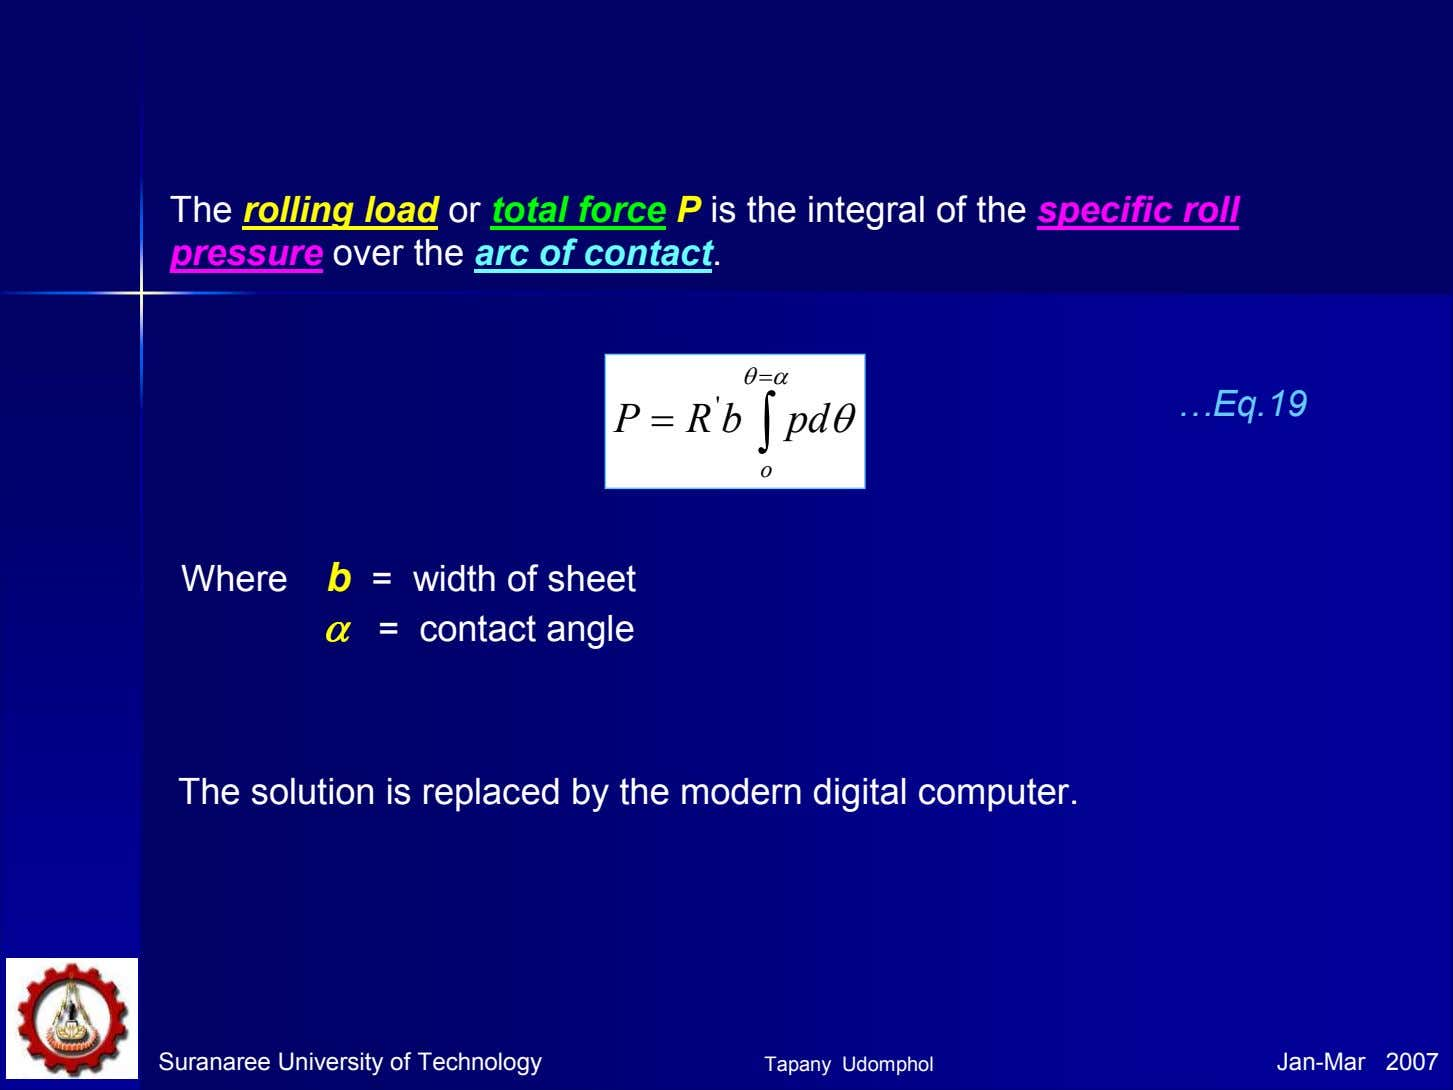 The rolling load or total force P is the integral of the specific roll pressure